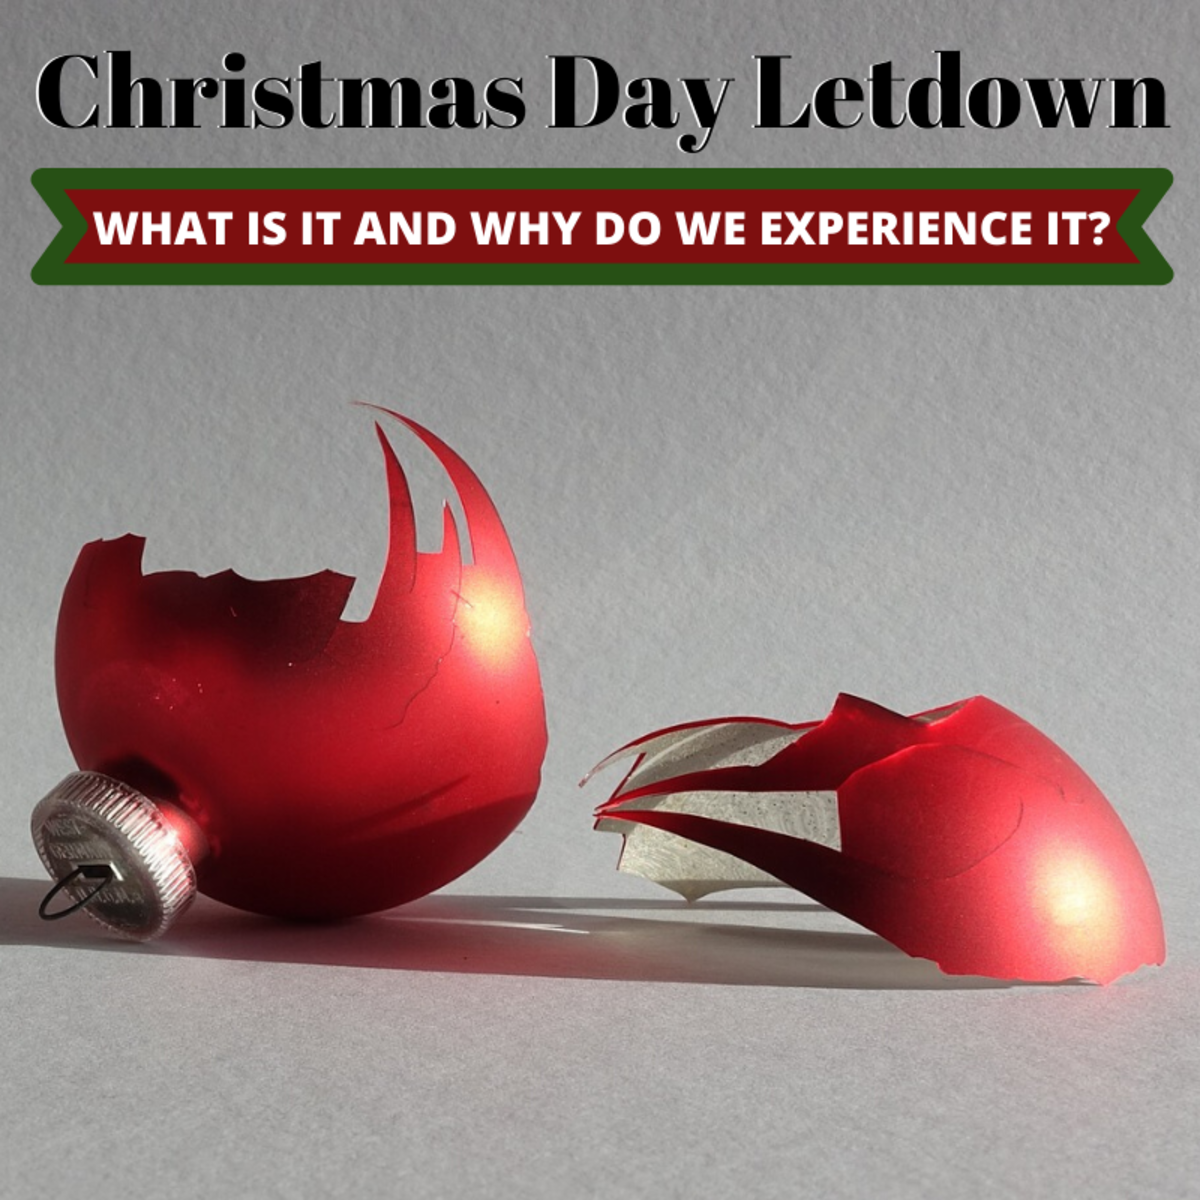 Many of us feel underwhelmed, let down, or downright disappointed on or after Christmas. Why is that?